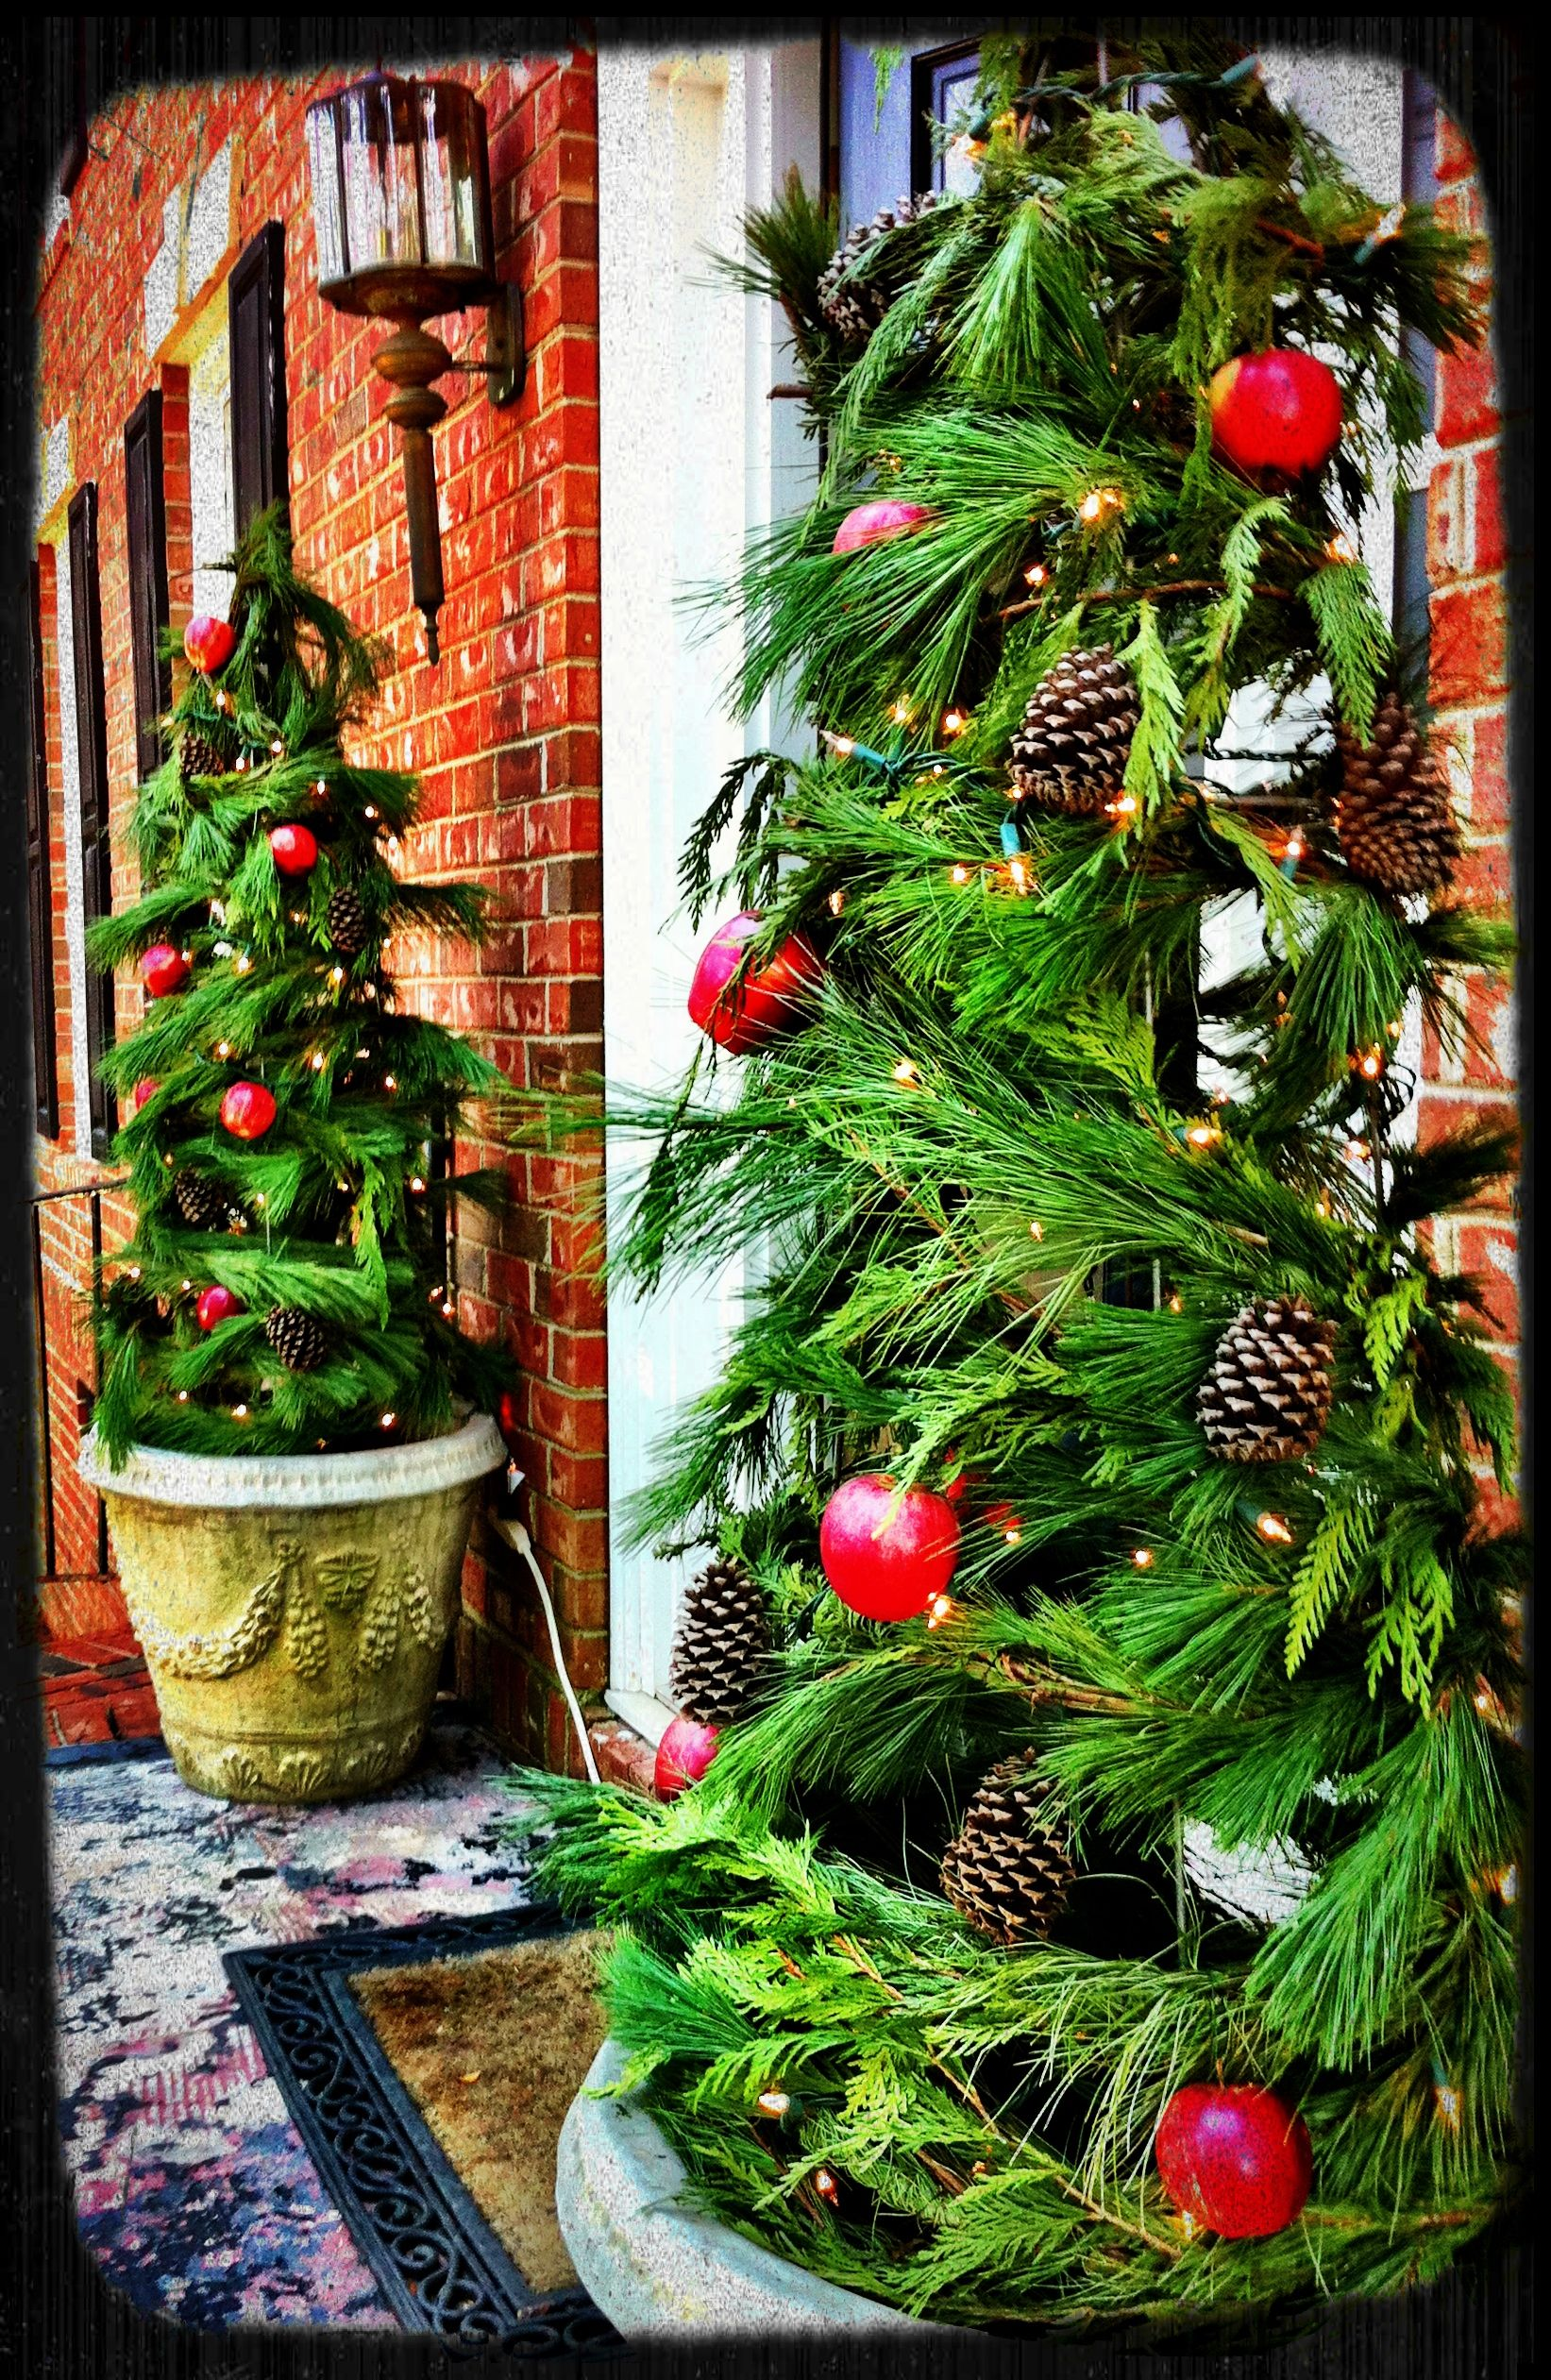 Tomato cage porch trees. Wrap garland a round tomato cages. Secure ...